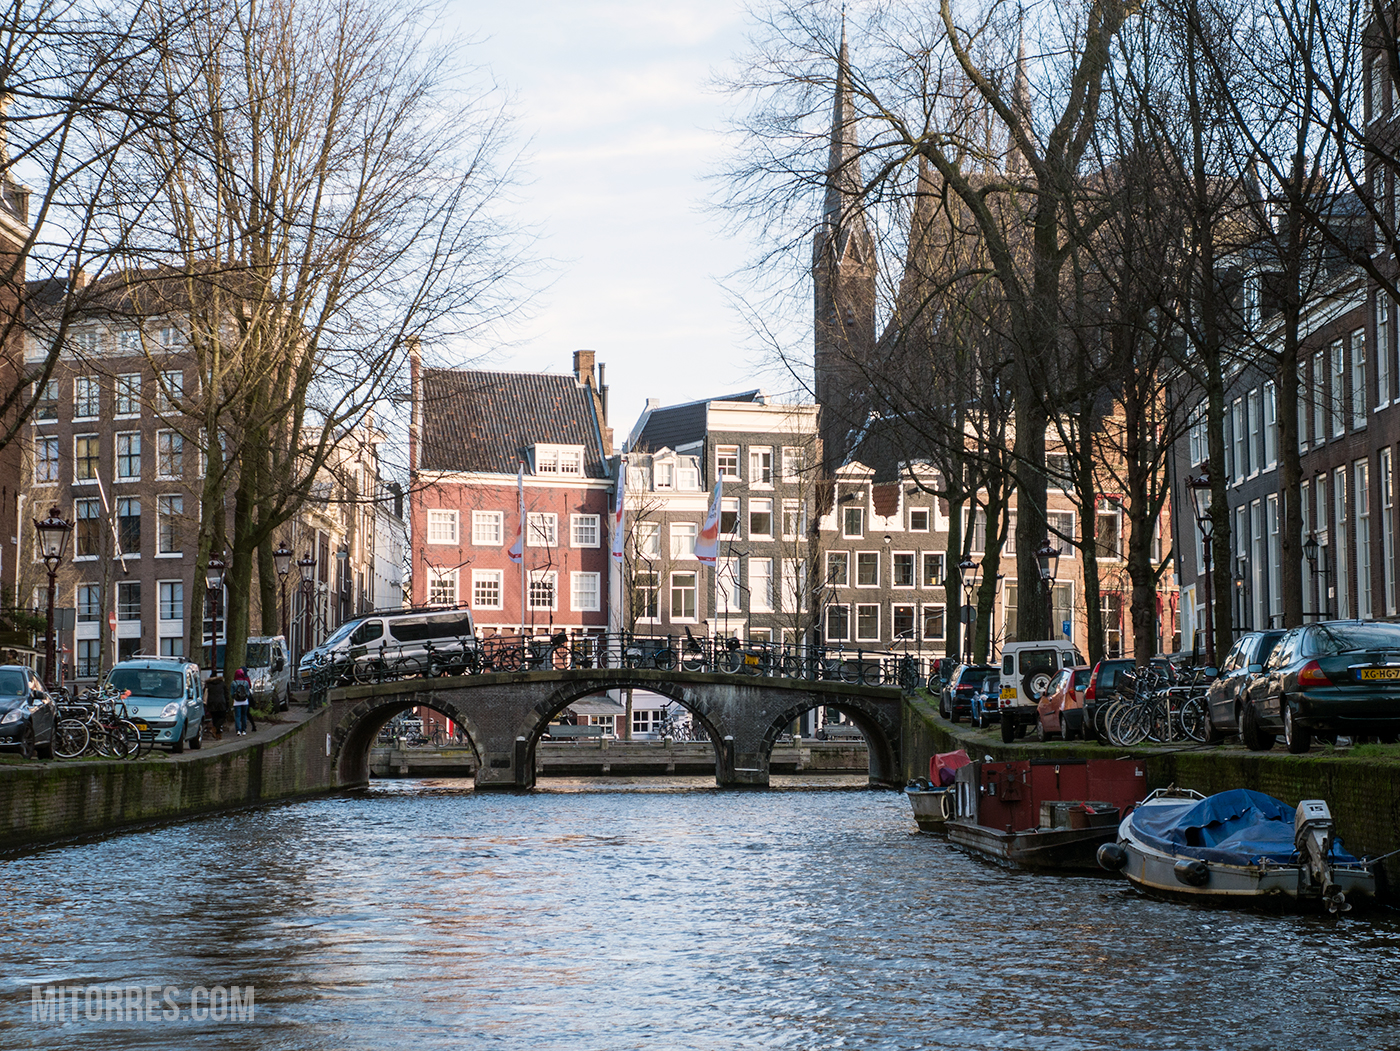 Amsterdam has 165 canals and over 1200 bridges.